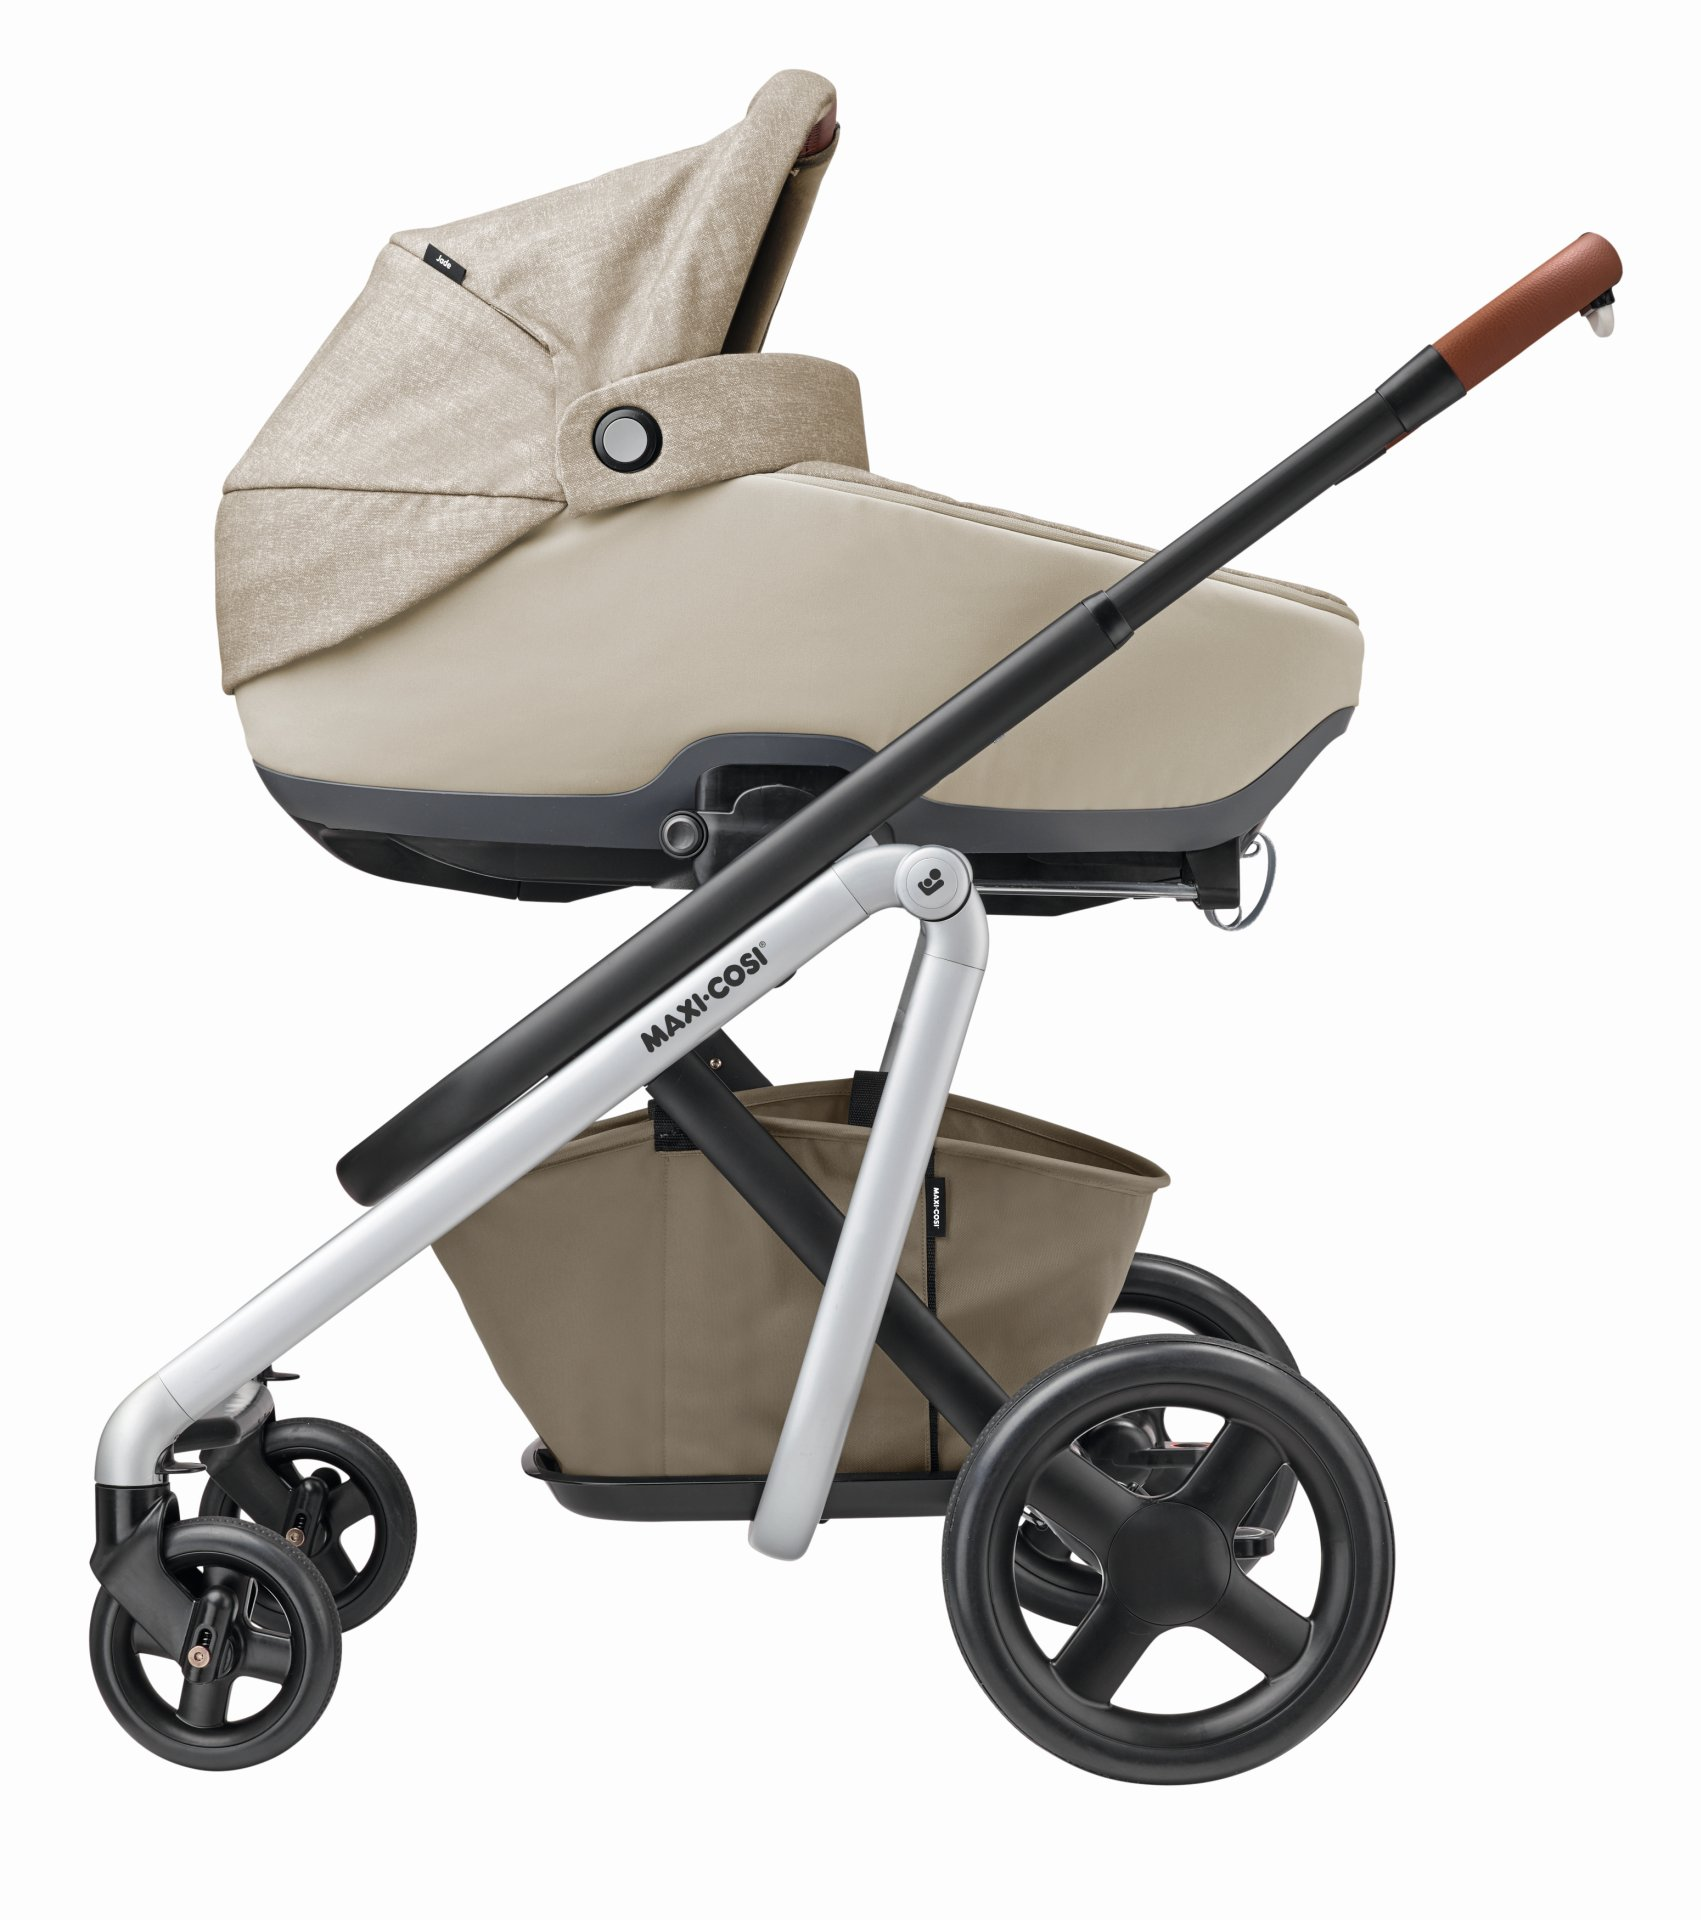 Maxi Cosi Jade Carrycot For Cars 2019 Nomad Sand Buy At